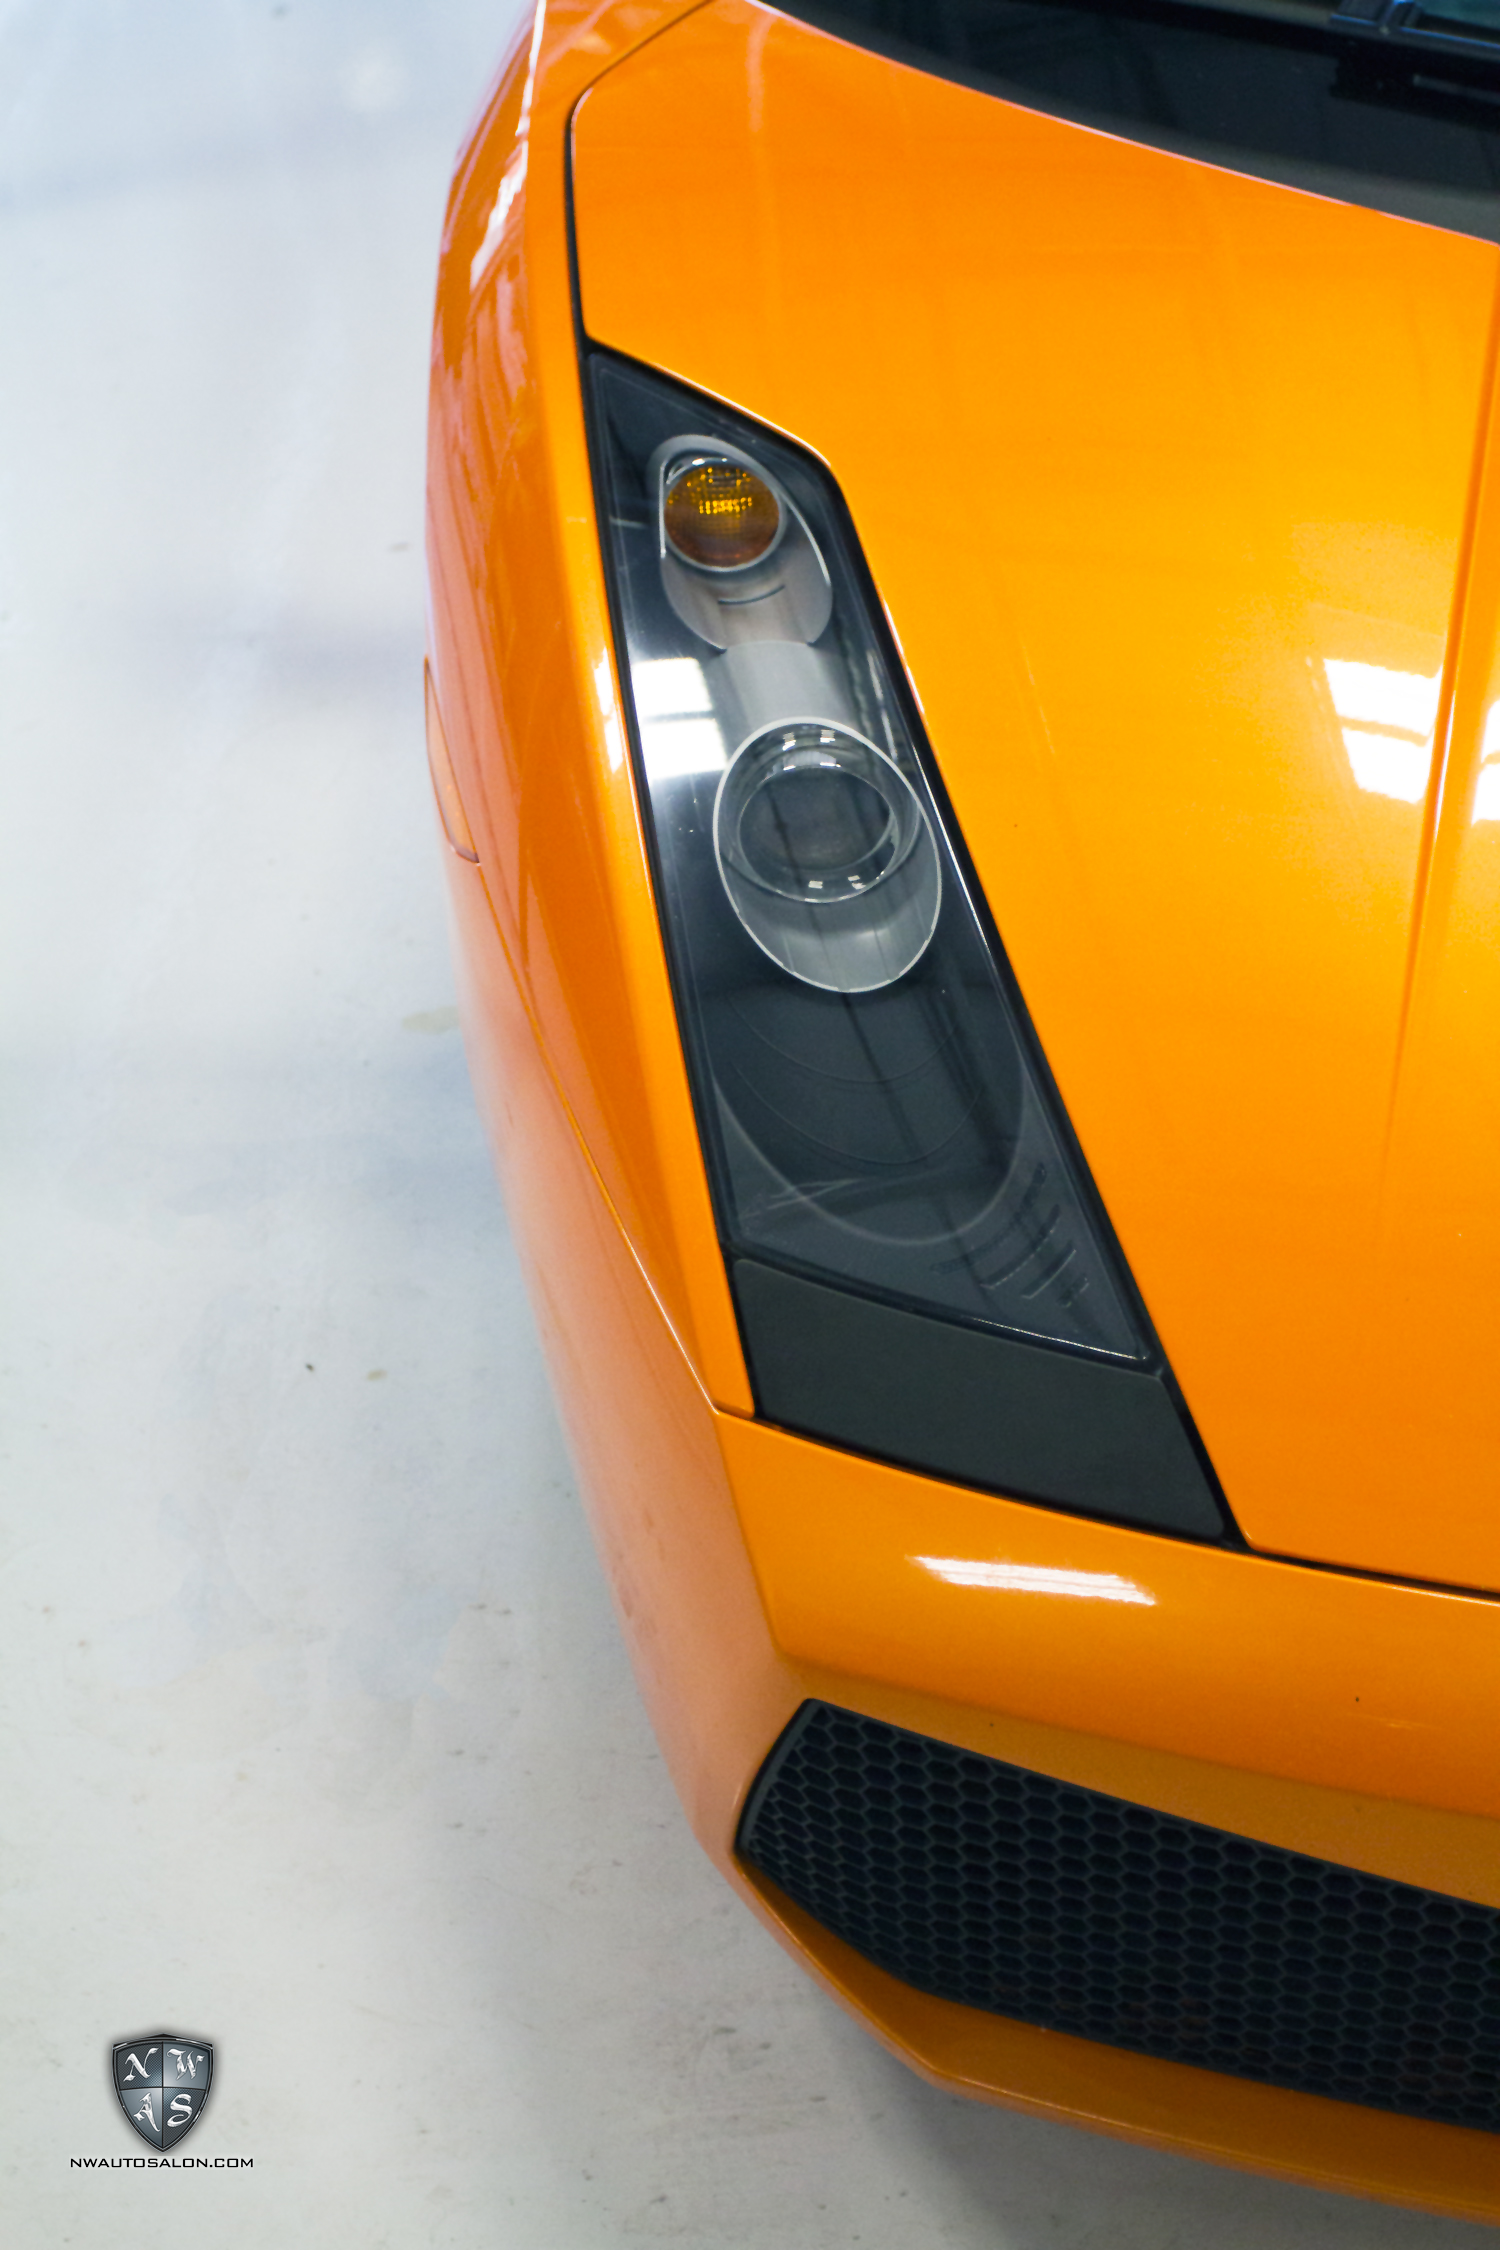 Alderwood Auto Detailing NorthWest Auto Salon Lamborghini Gallard headlight restoration and clear protection film